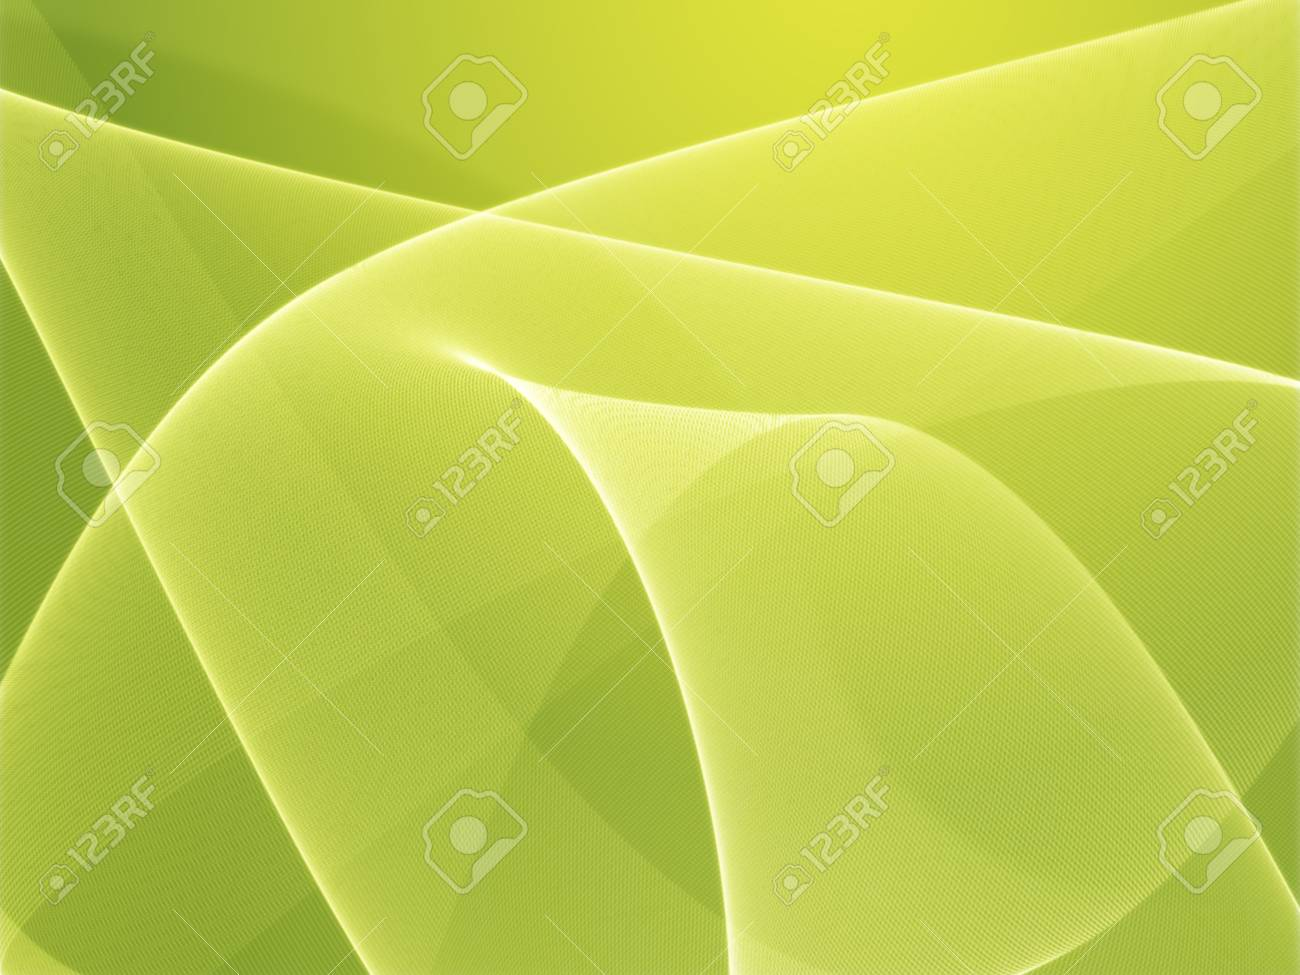 Abstract wallpaper illustration of wavy flowing energy and colors Stock Photo - 3414258